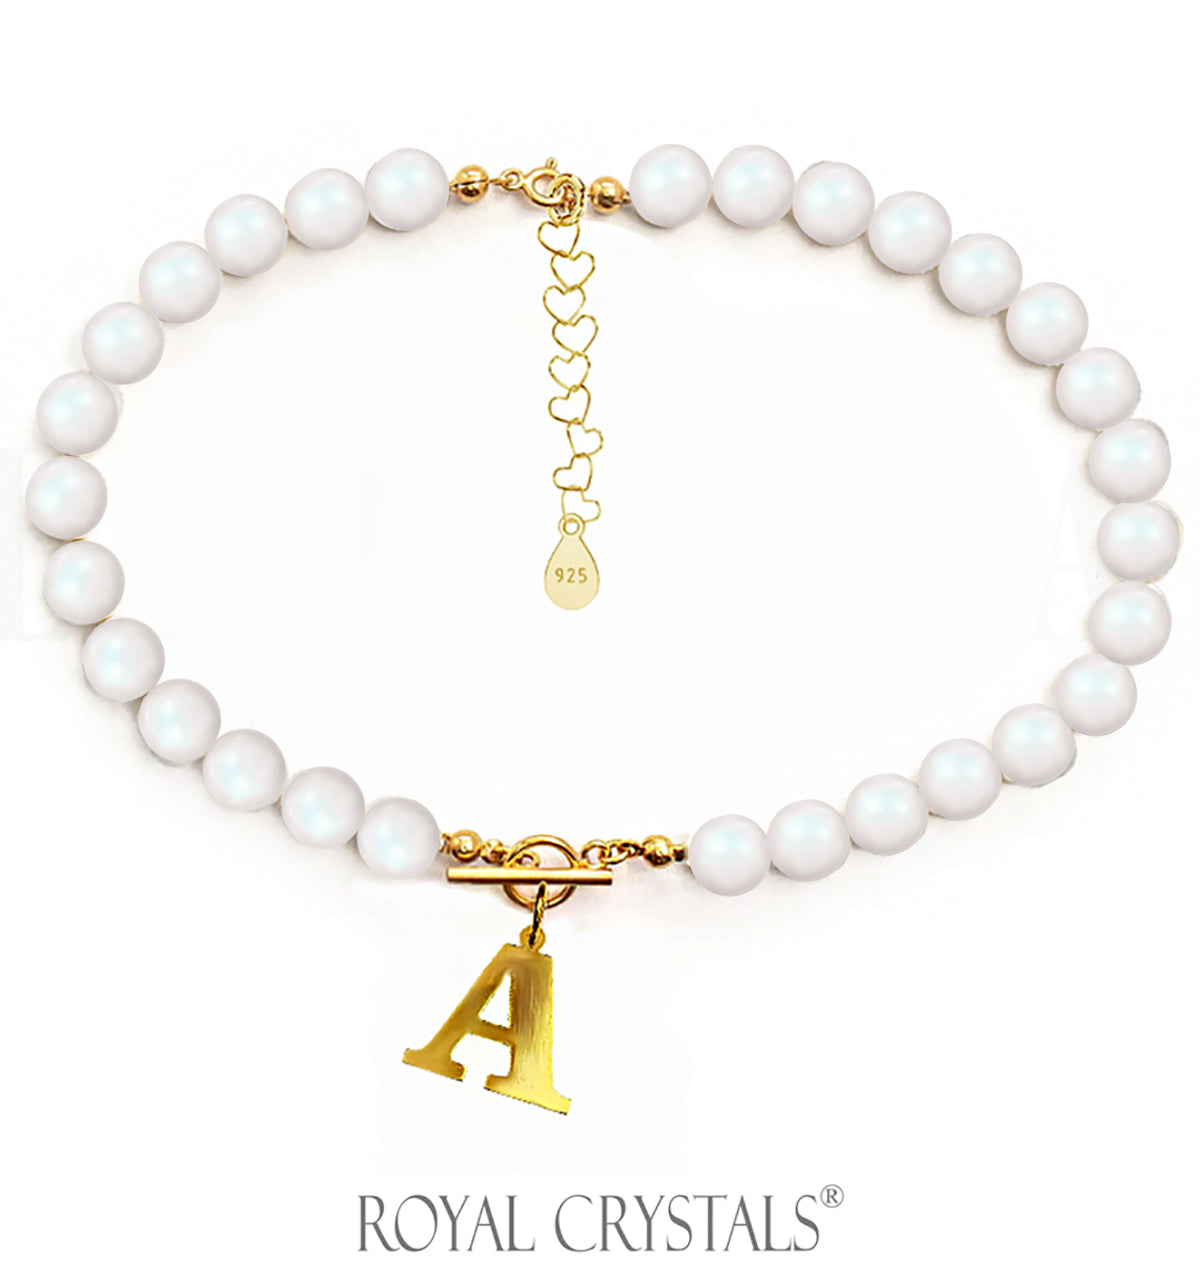 STATUS Pearelescent Pearl Initial Necklace (Shocker) with Swarovski Crystal Pearls 24K Gold Plated Silver